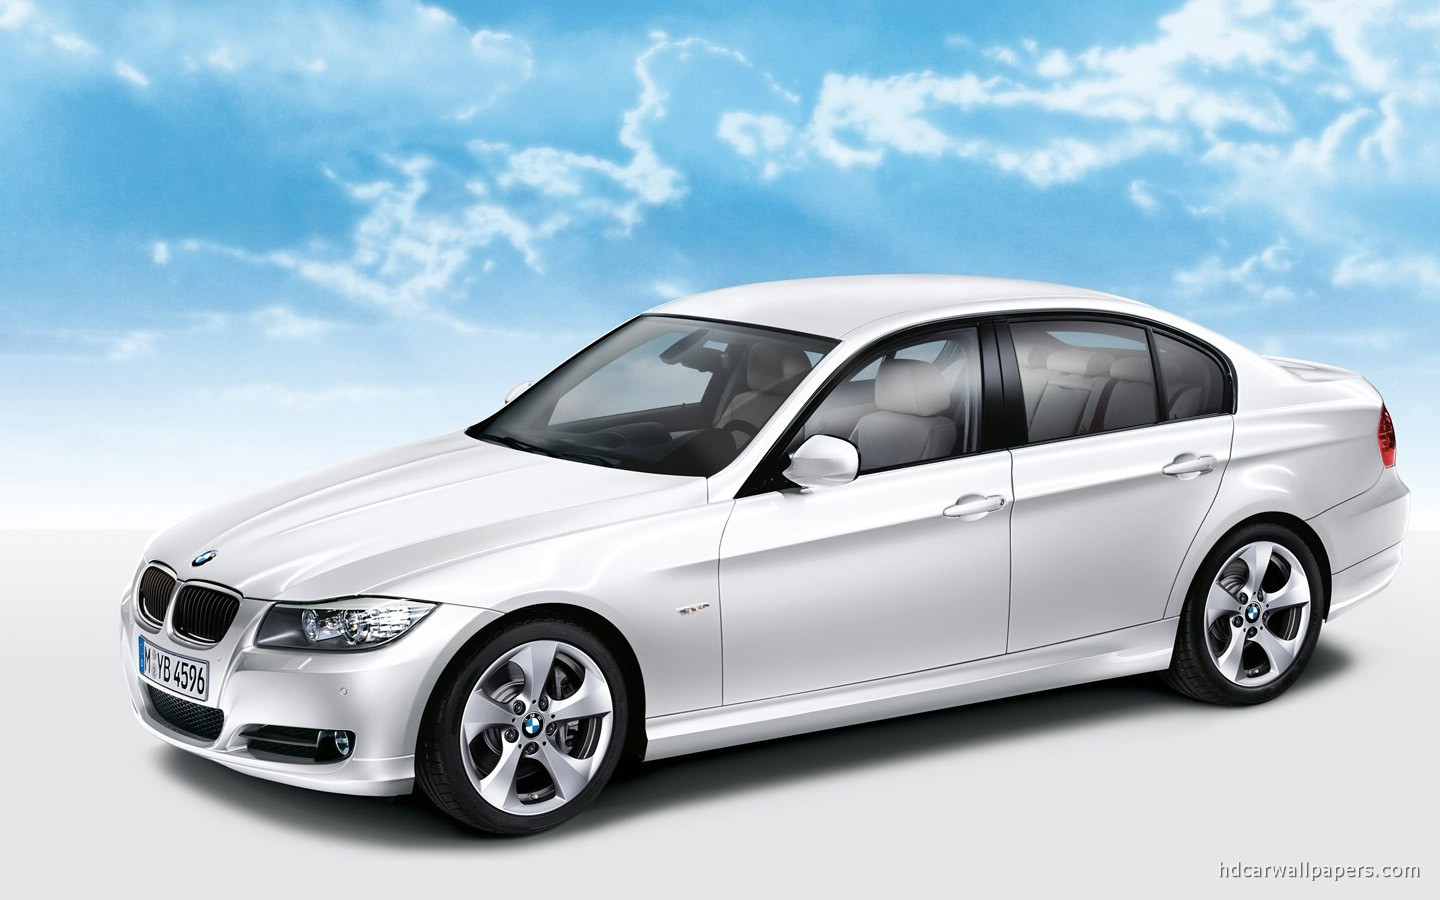 Bmw 320 2010 Review Amazing Pictures And Images Look At The Car